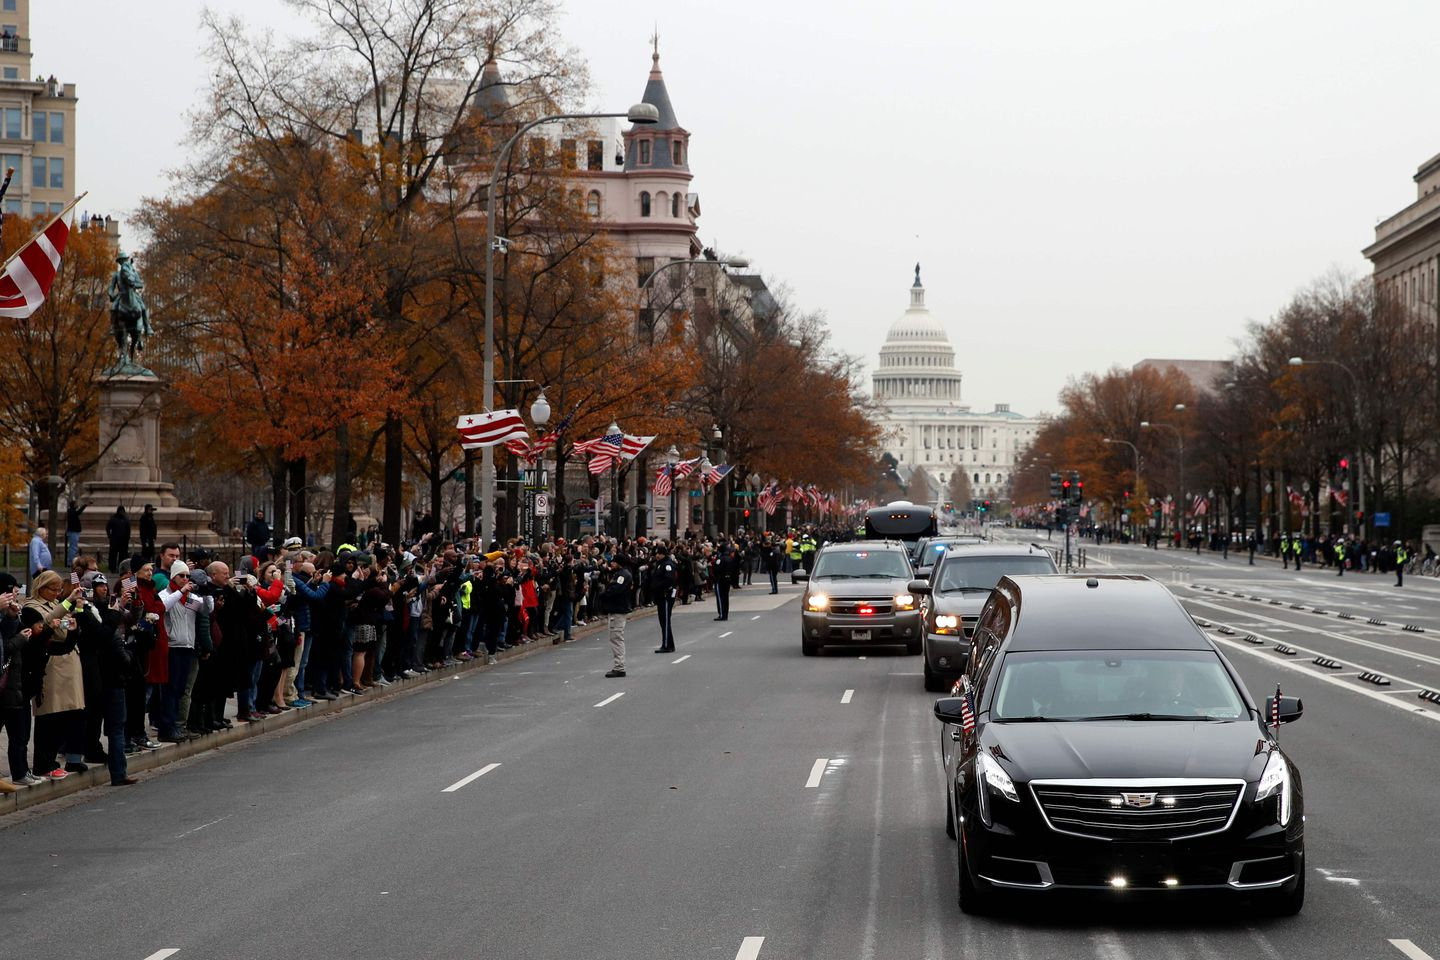 People lined Pennsylvania Avenue as the hearse passed by carrying the remains of former President George H.W. Bush.